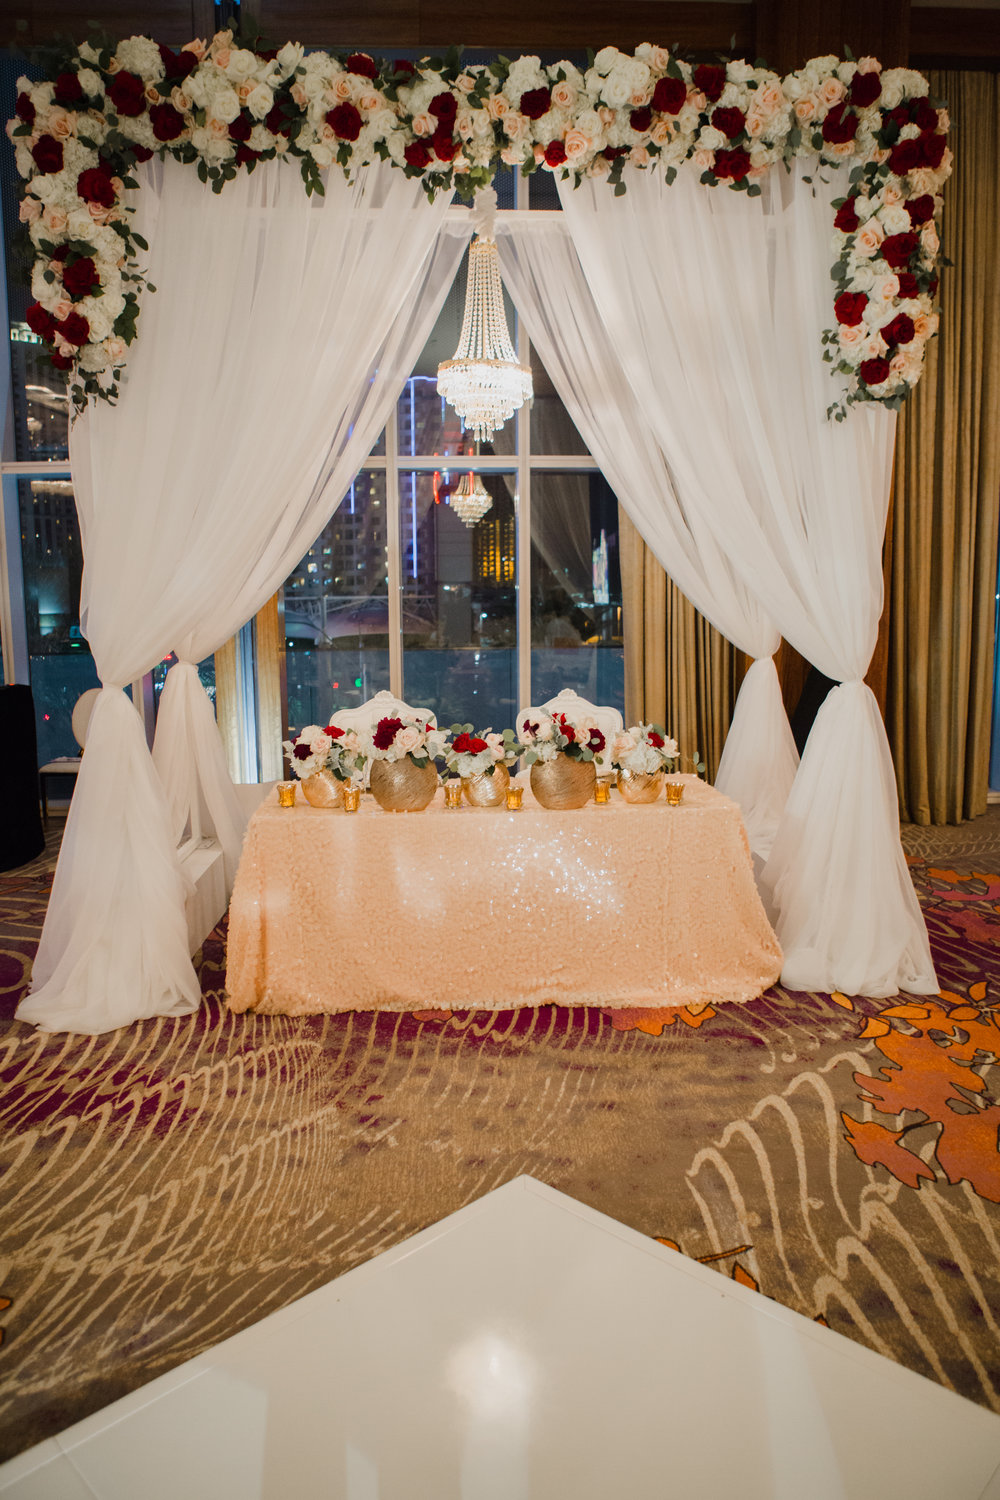 Sweetheart table under beautiful arch with lush floral garland.  Luxury wedding at the Mandarin Oriental with a color scheme of white, blush, and pops of wine red produced by Las Vegas Wedding Planner Andrea Eppolito with photos by Stephen Salazar Photography.